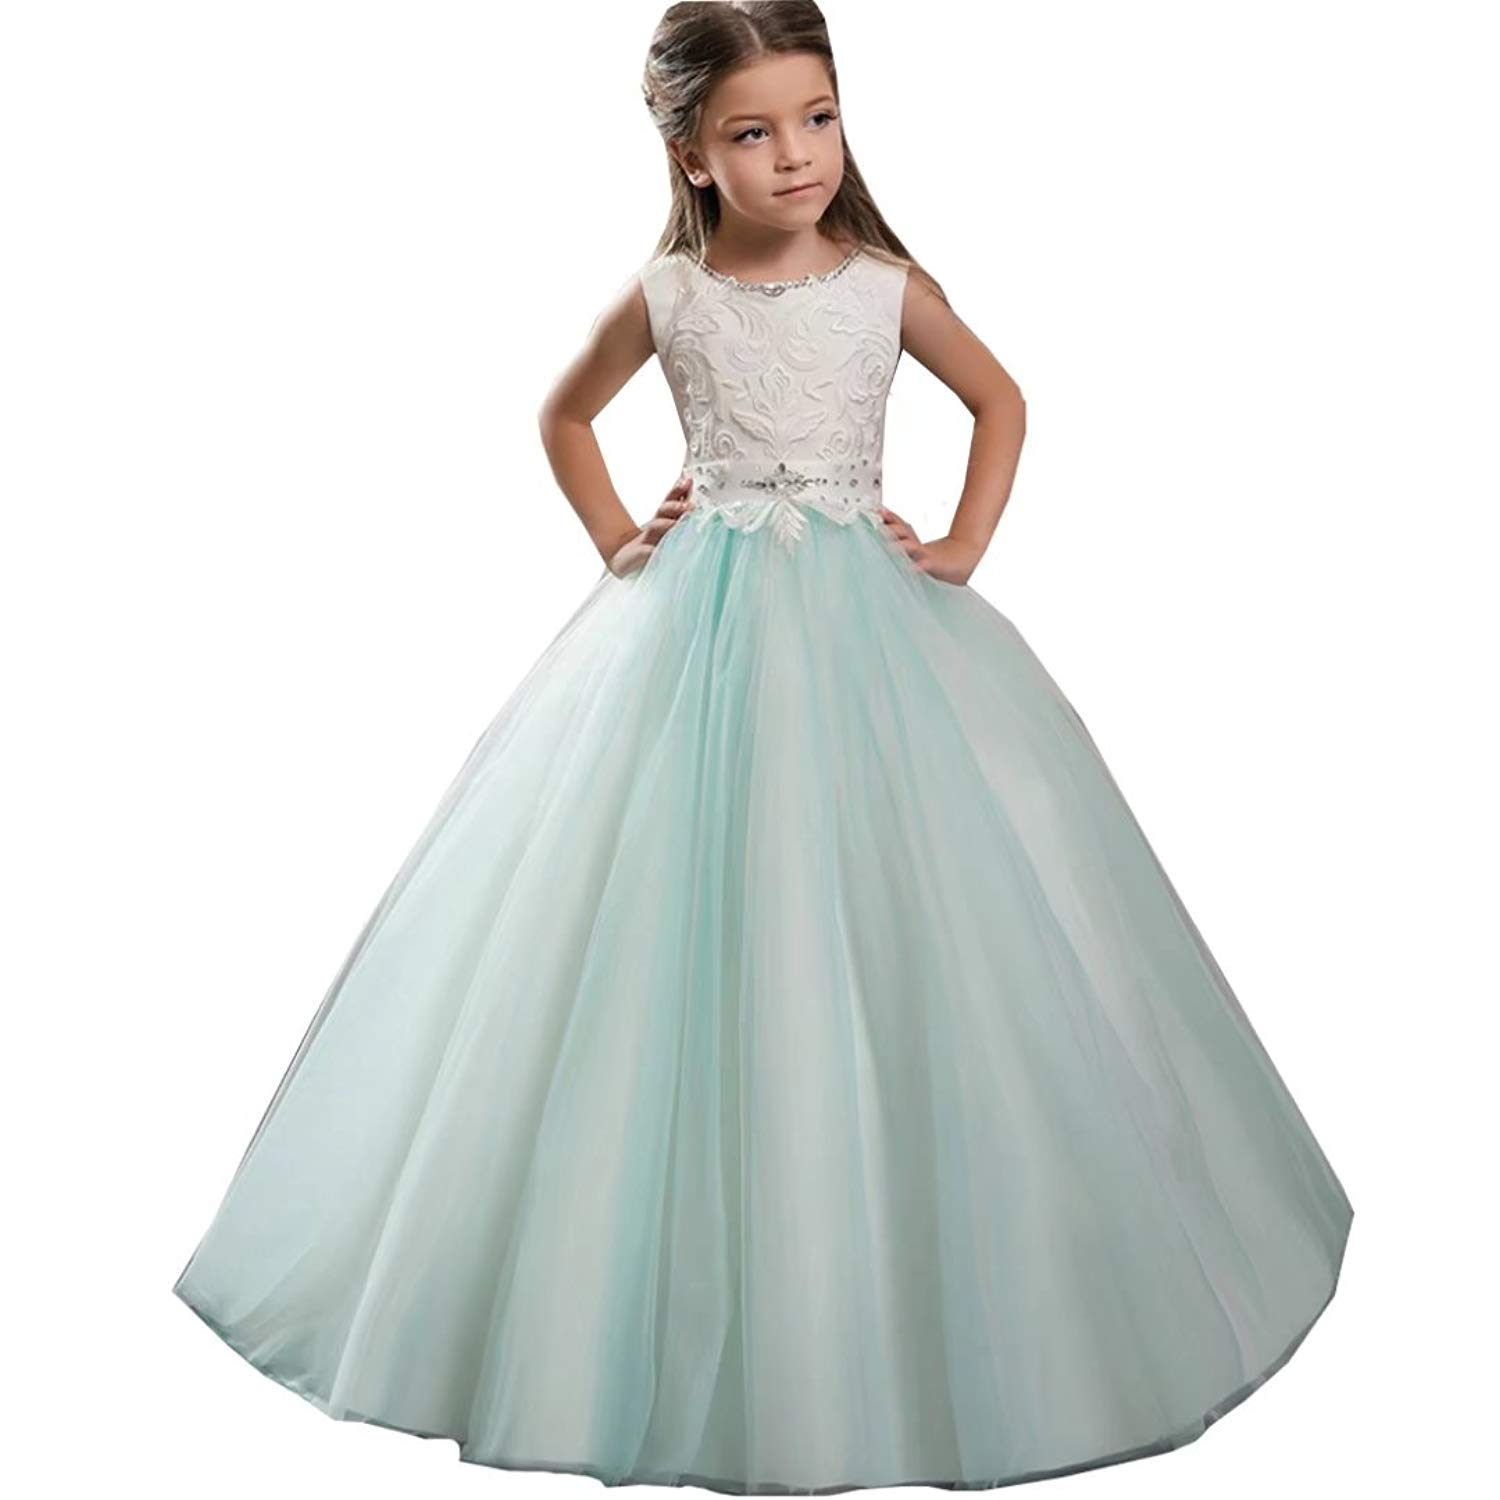 a36050395a26 Get Quotations · Tifus Dress Flower Girl Dresses Ball Gowns Lace up Sparkly  Dresses for Girls Holy First Communion